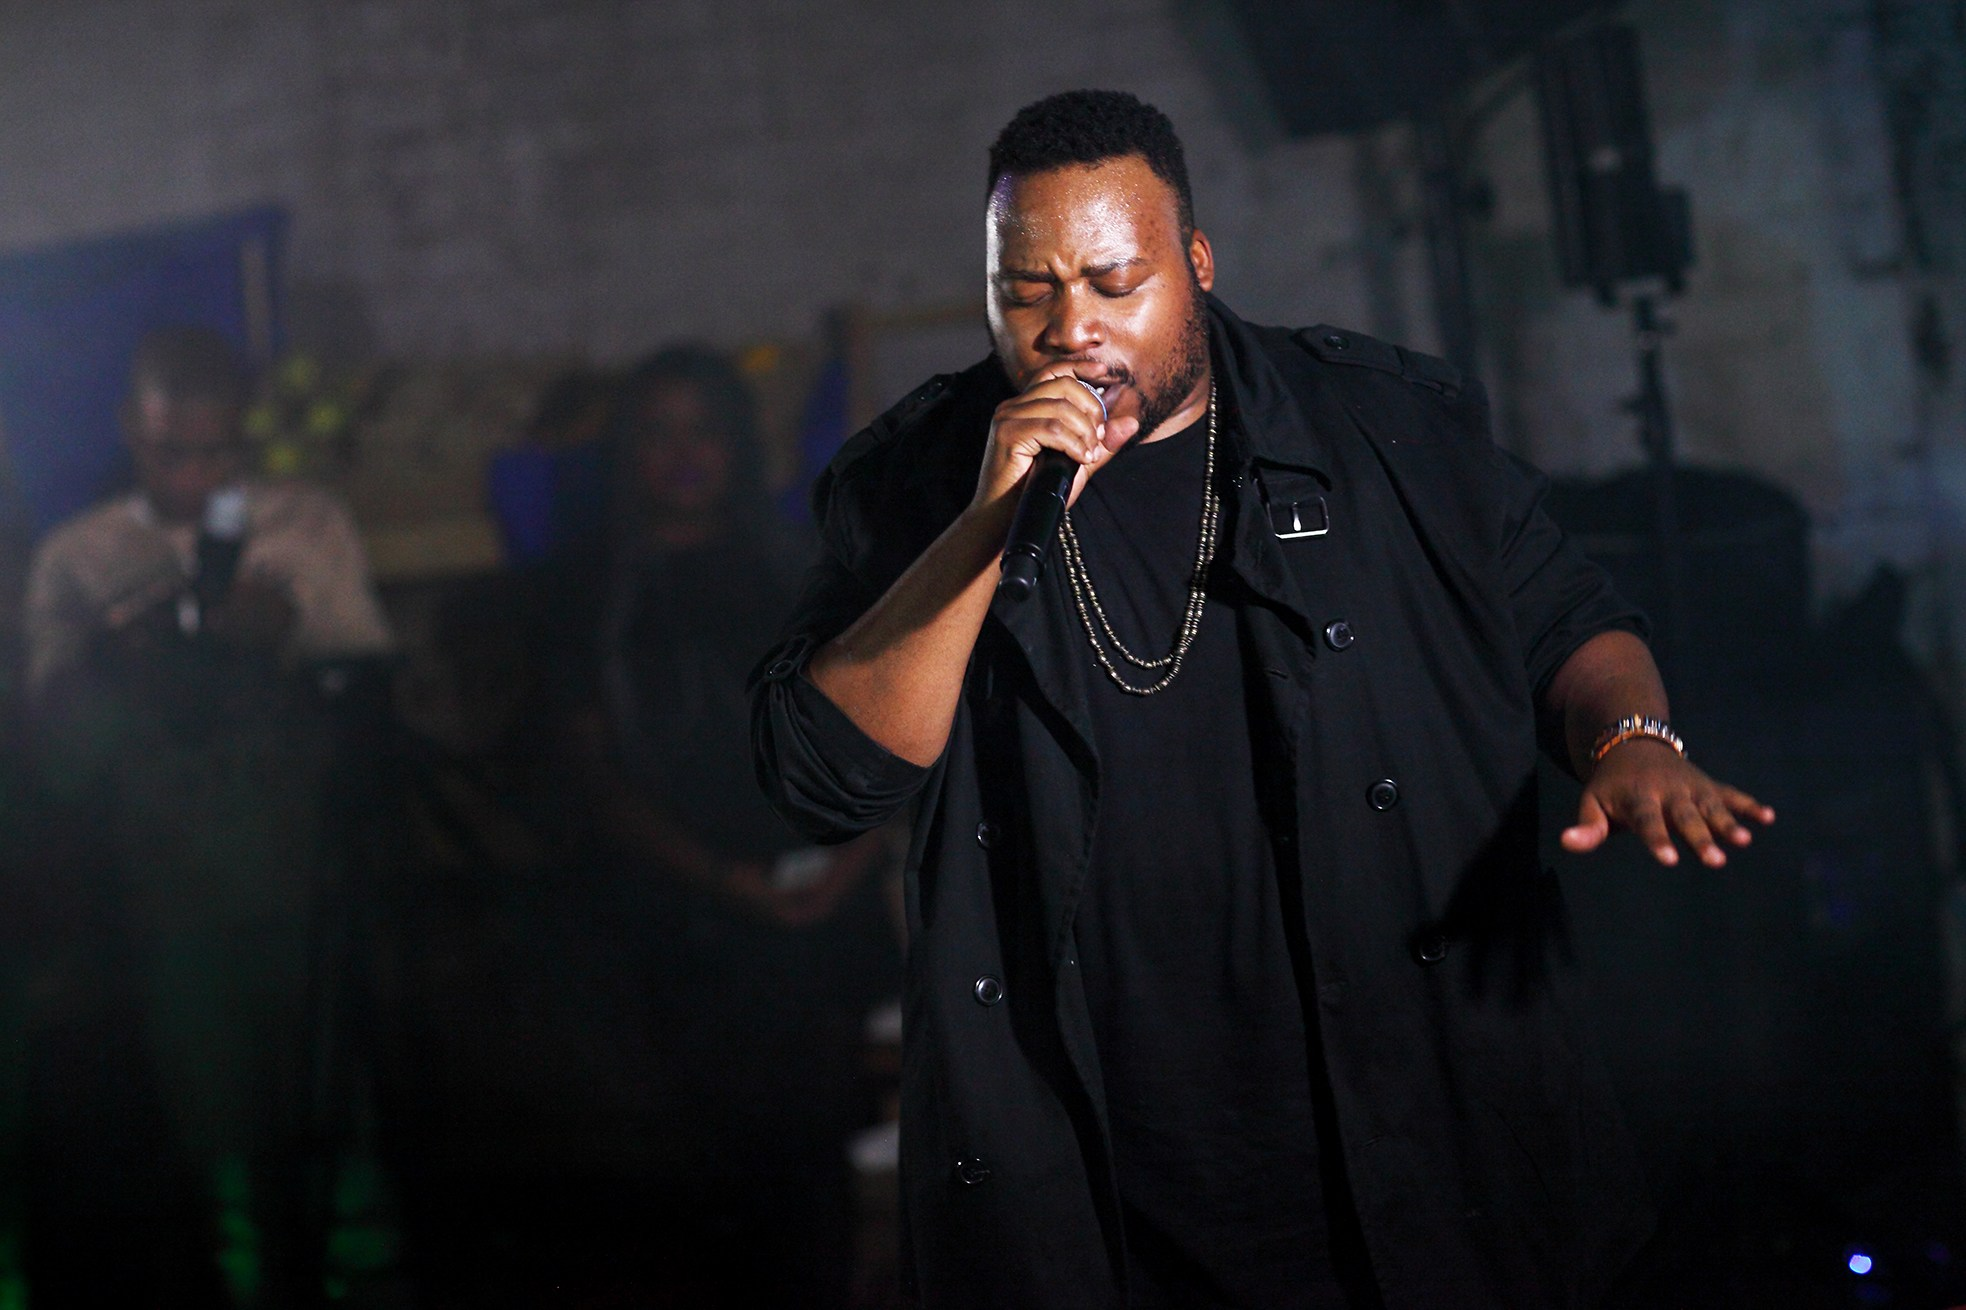 Stogie T Sits Down With The Sobering Podcast Following The Controversial Incident At The South African Hip Hop Awards [Listen] Tumi and the volume